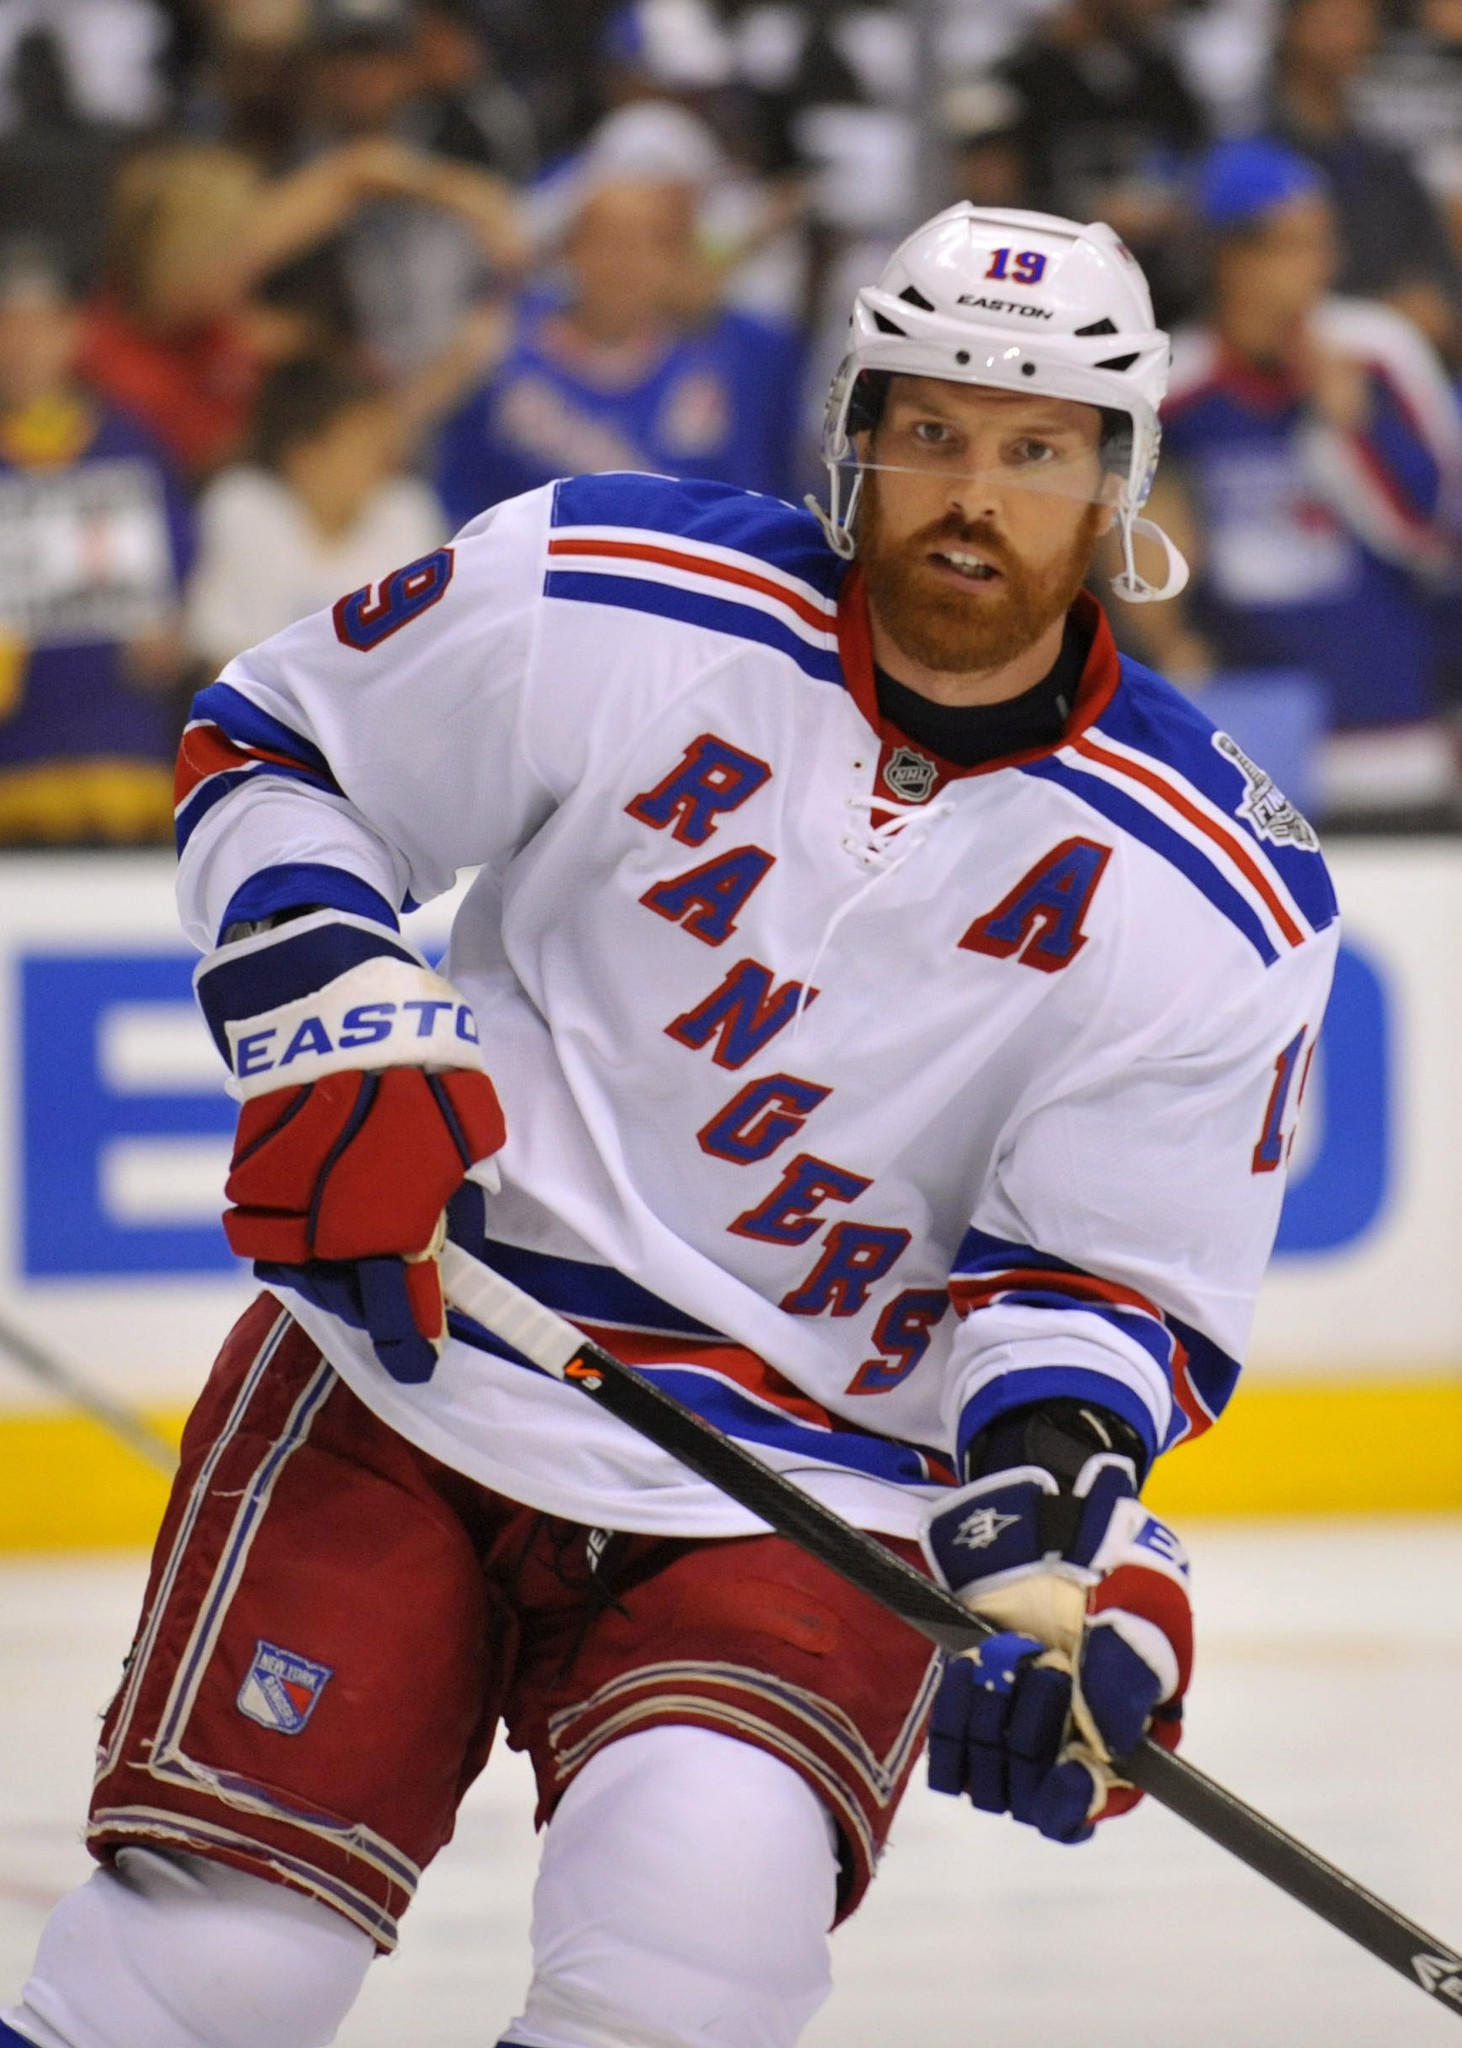 Then-Rangers center Brad Richards warms up before Game 2 of the 2014 Stanley Cup Final against the Kings at Staples Center.